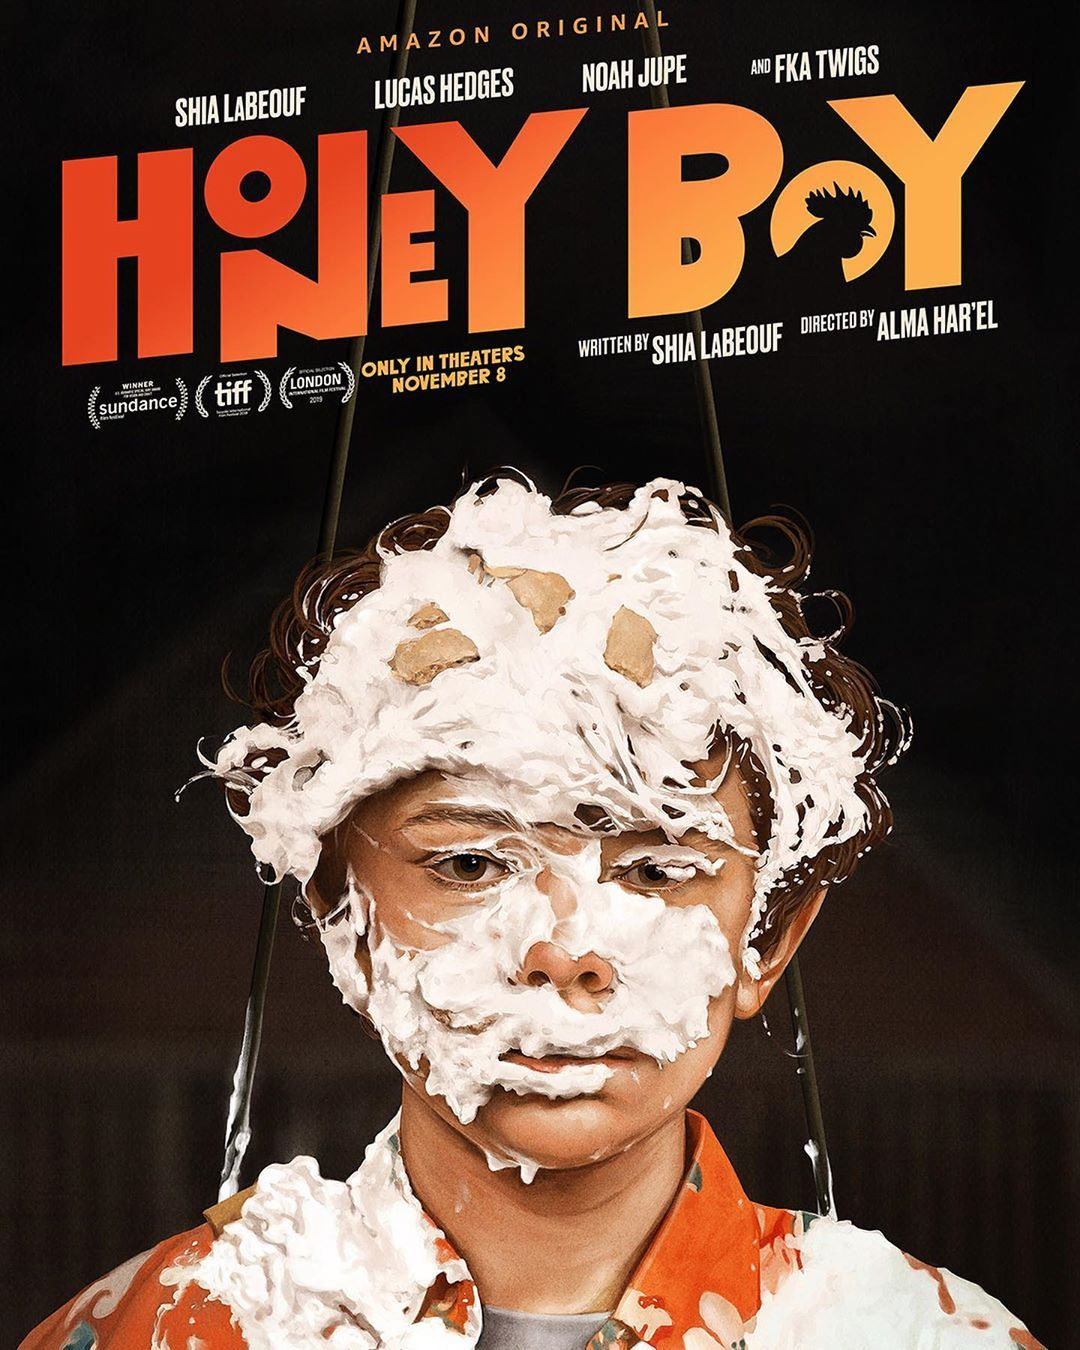 Contest Alert 🚨 In anticipation of Honey Boy's release on